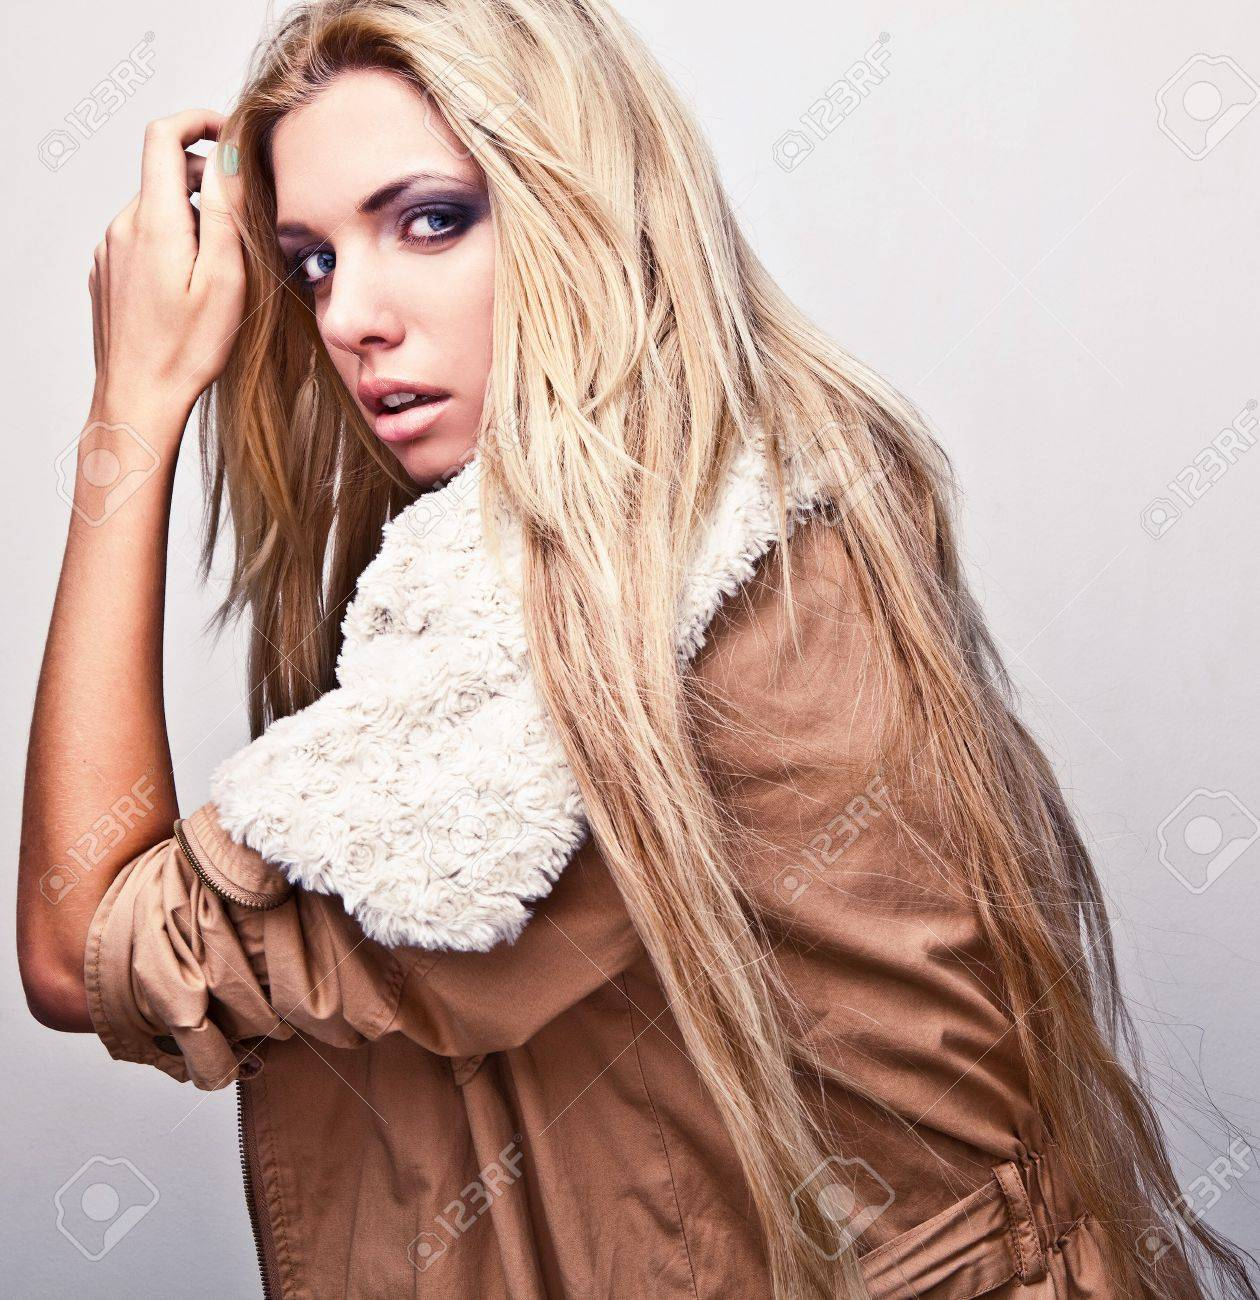 Amazing portrait of beautiful young blond woman on fur Stock Photo - 15575334